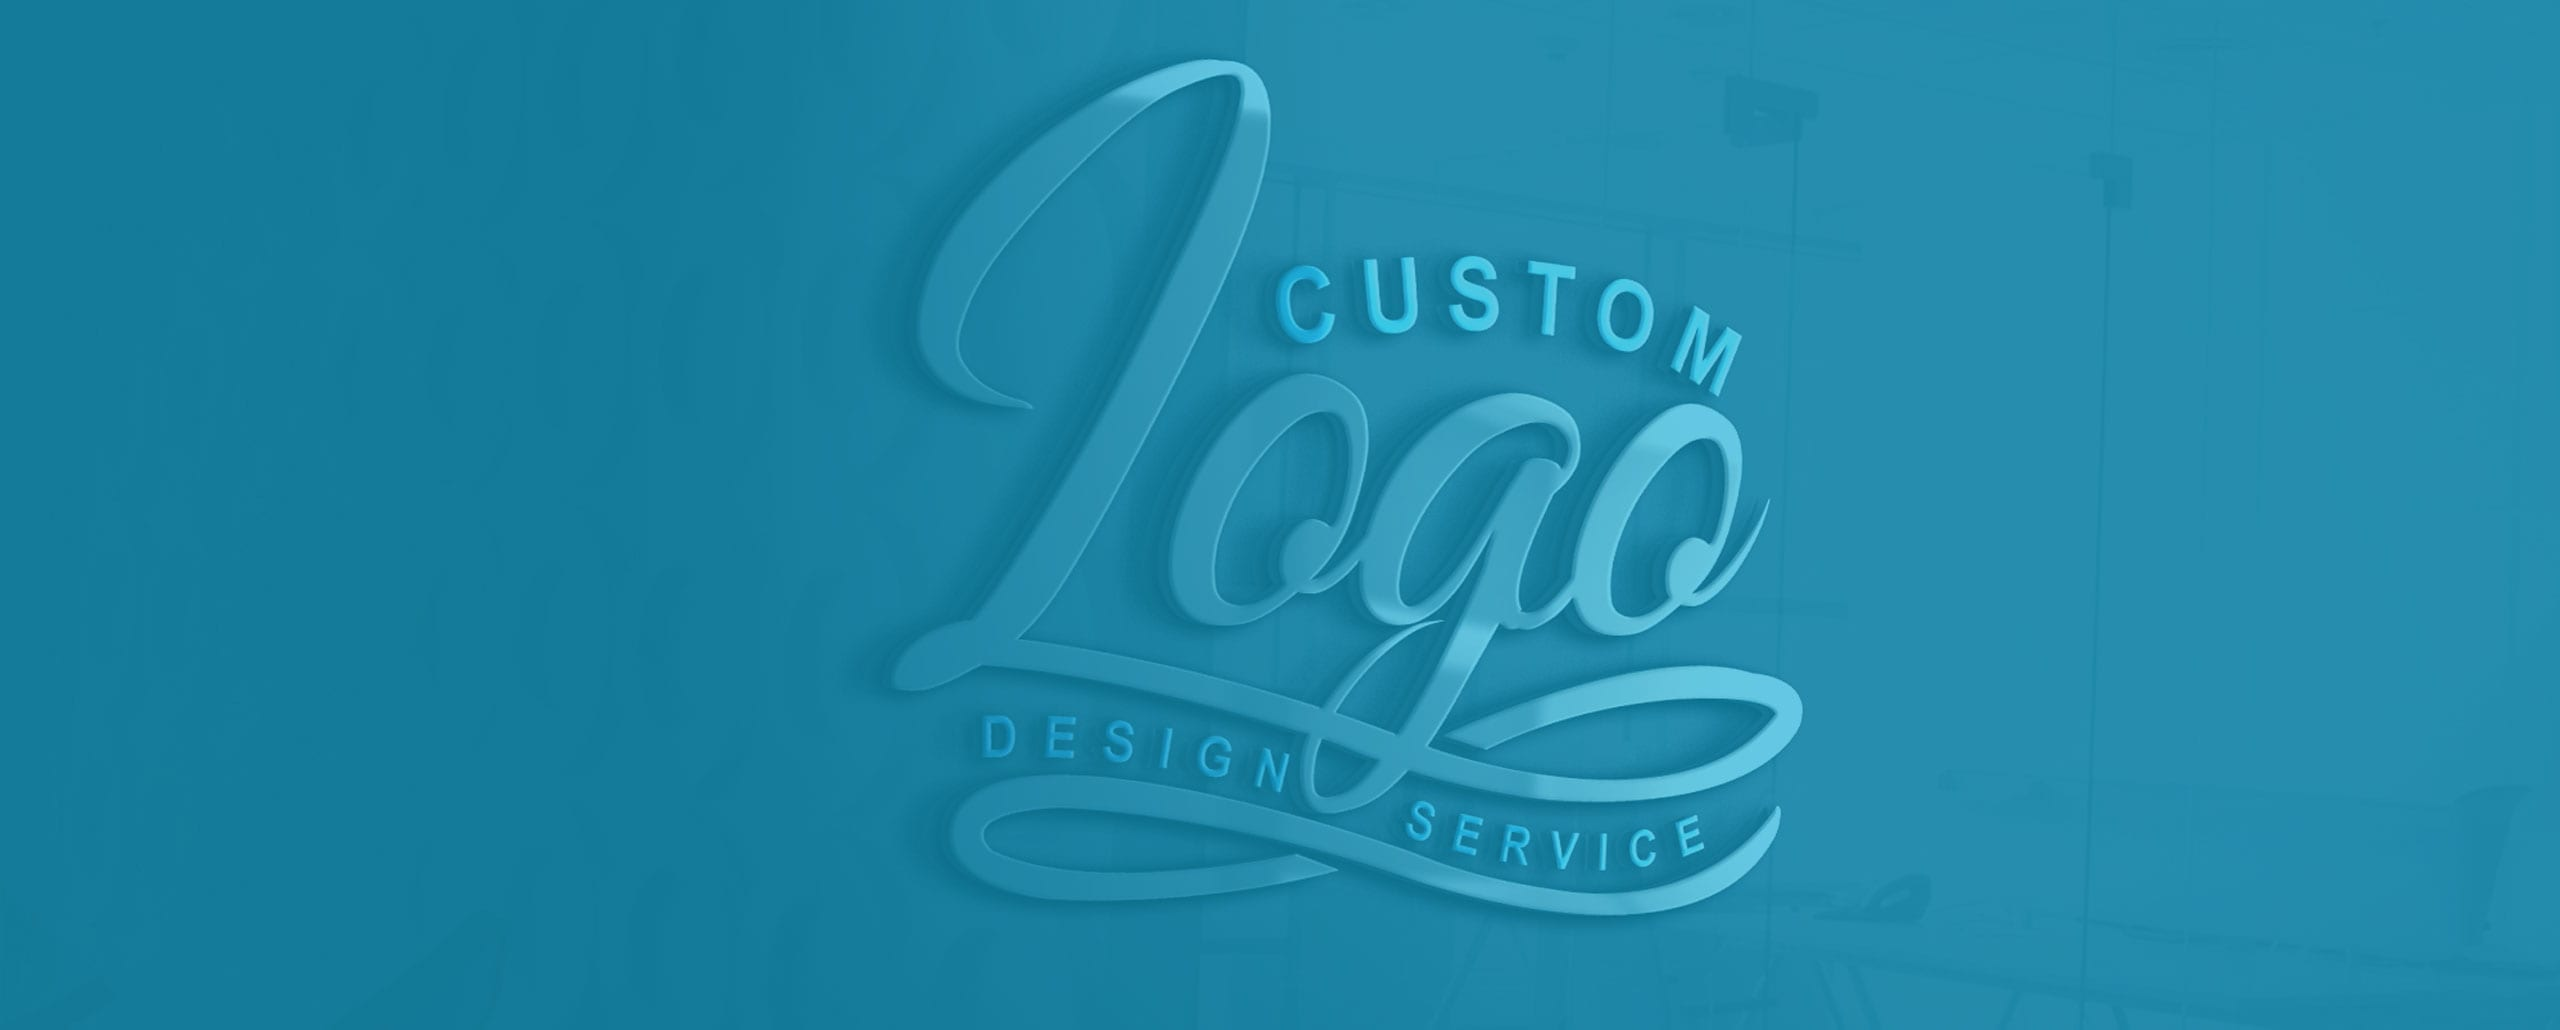 custom logo design maker